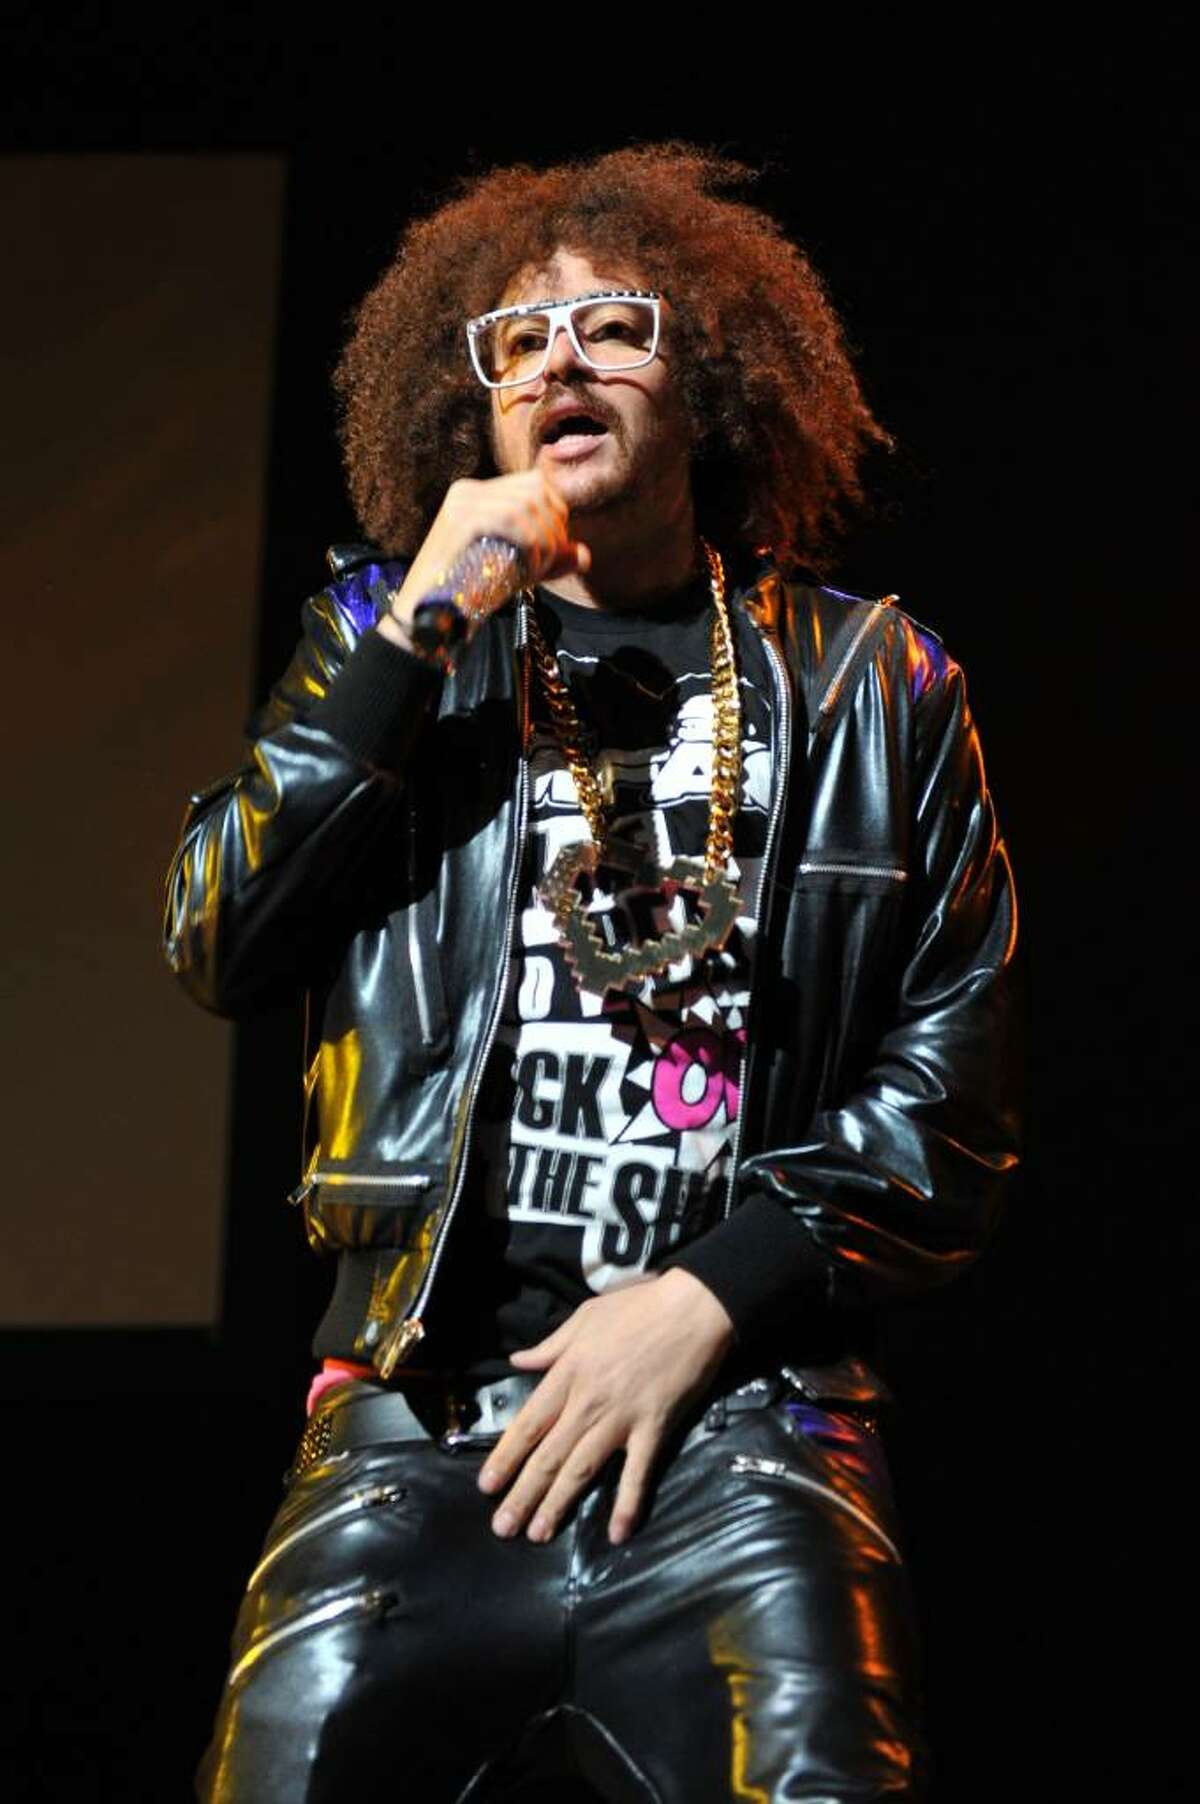 NEW YORK - FEBRUARY 24: Red Foo of LMFAO performs at Madison Square Garden on February 24, 2010 in New York City. (Photo by Bryan Bedder/Getty Images) *** Local Caption *** Red Foo